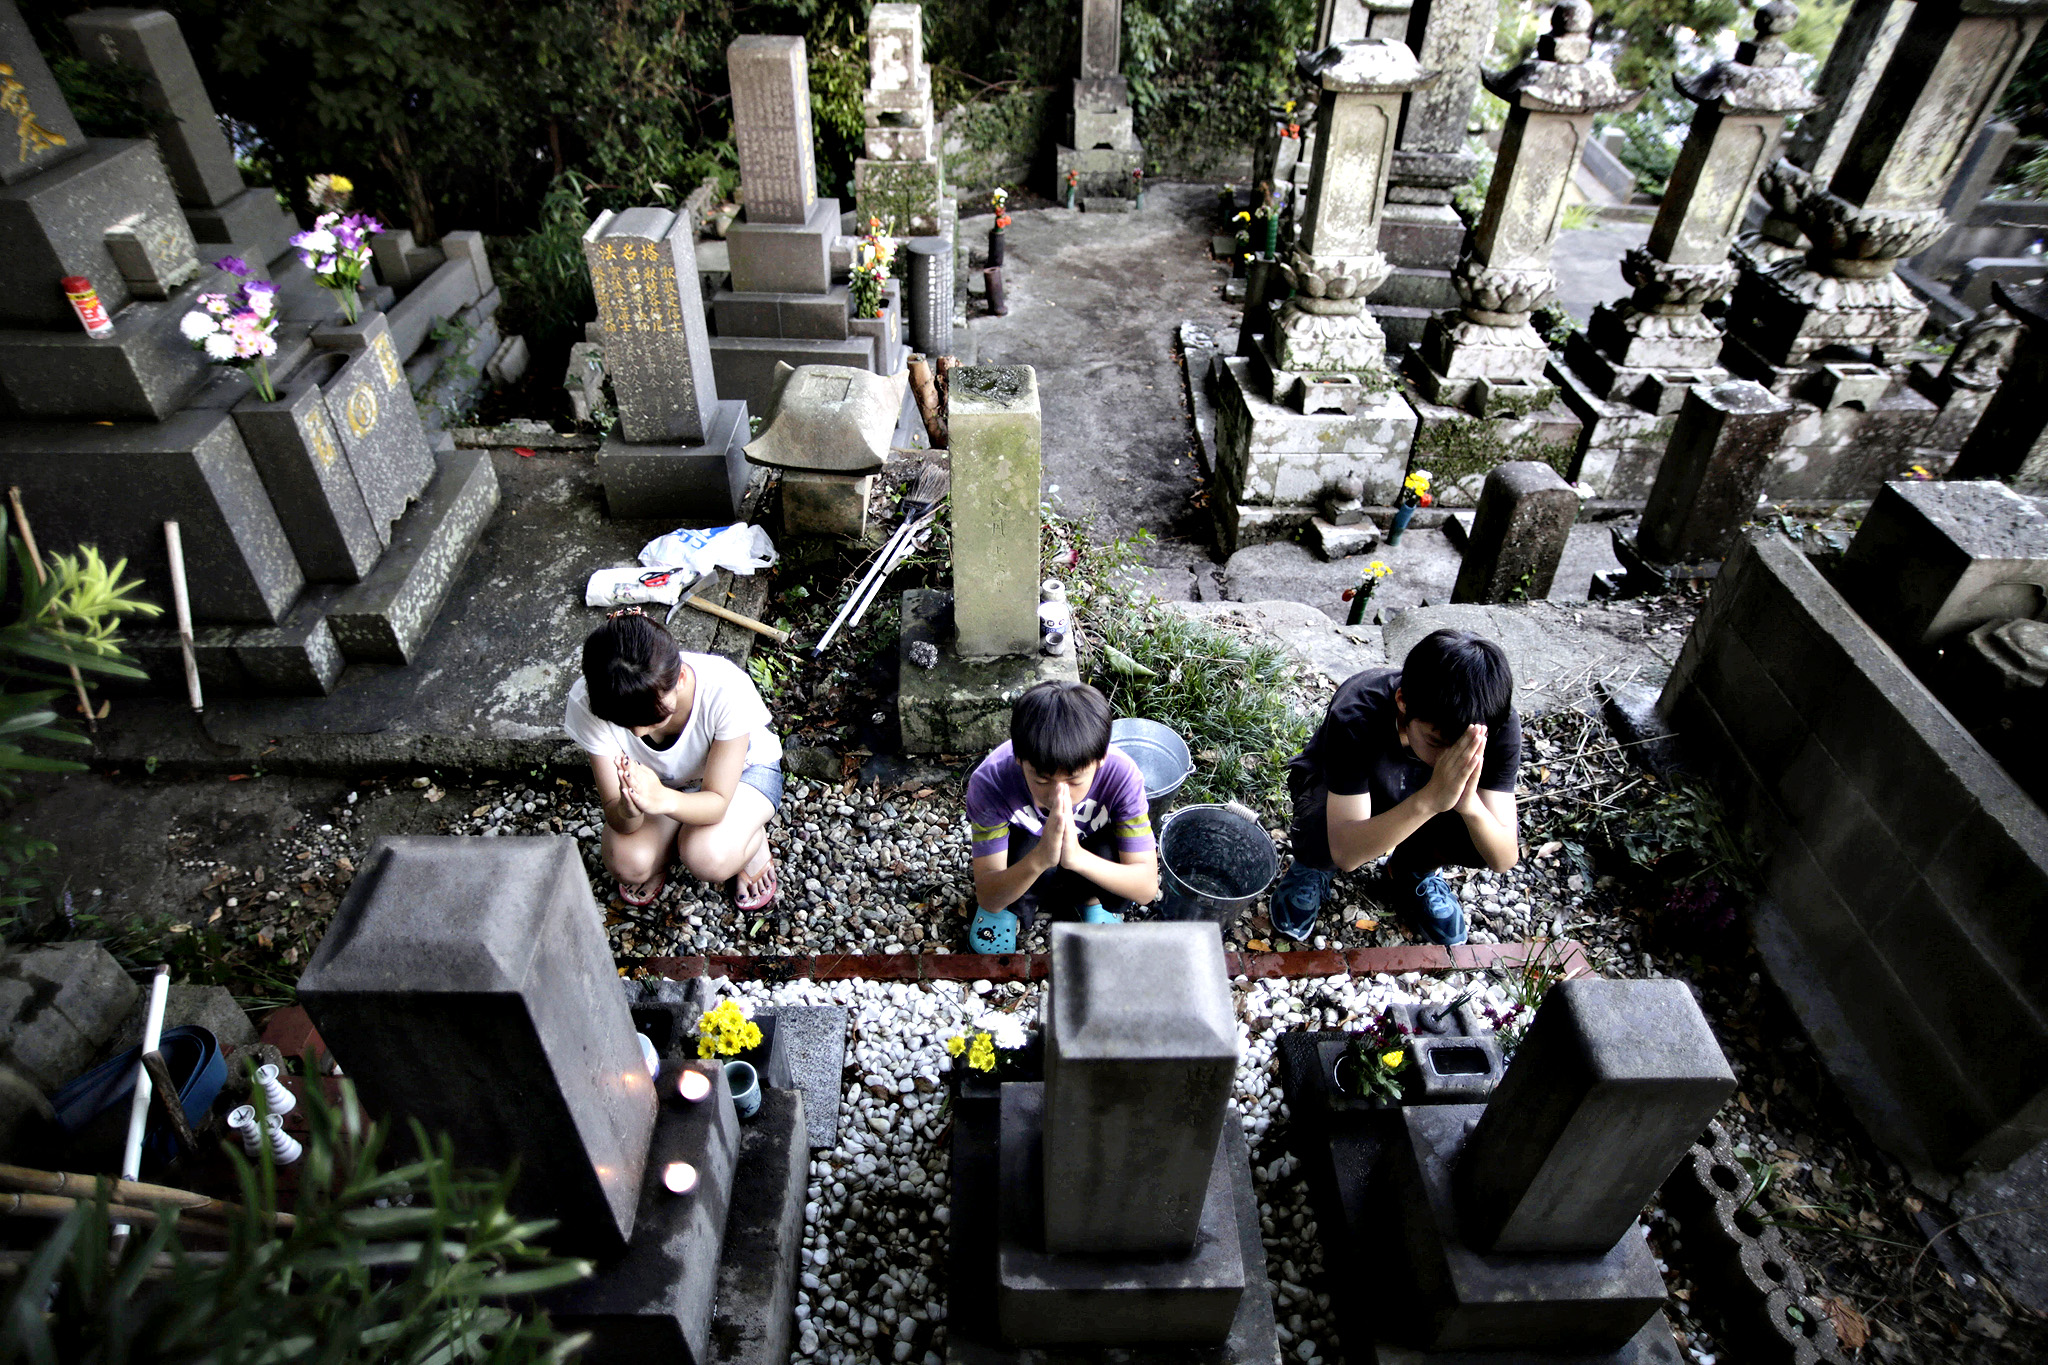 Children pray for their ancestors after sweeping their family tombstones at a cemetery in Haiki, Nagasaki Prefecture, southern Japan, Wednesday, Aug. 13, 2014 as they celebrate the Bon Festival. Japanese believe that their ancestors' spirits return to their homes to reunite with their family during the three-day festival starting Aug. 13.